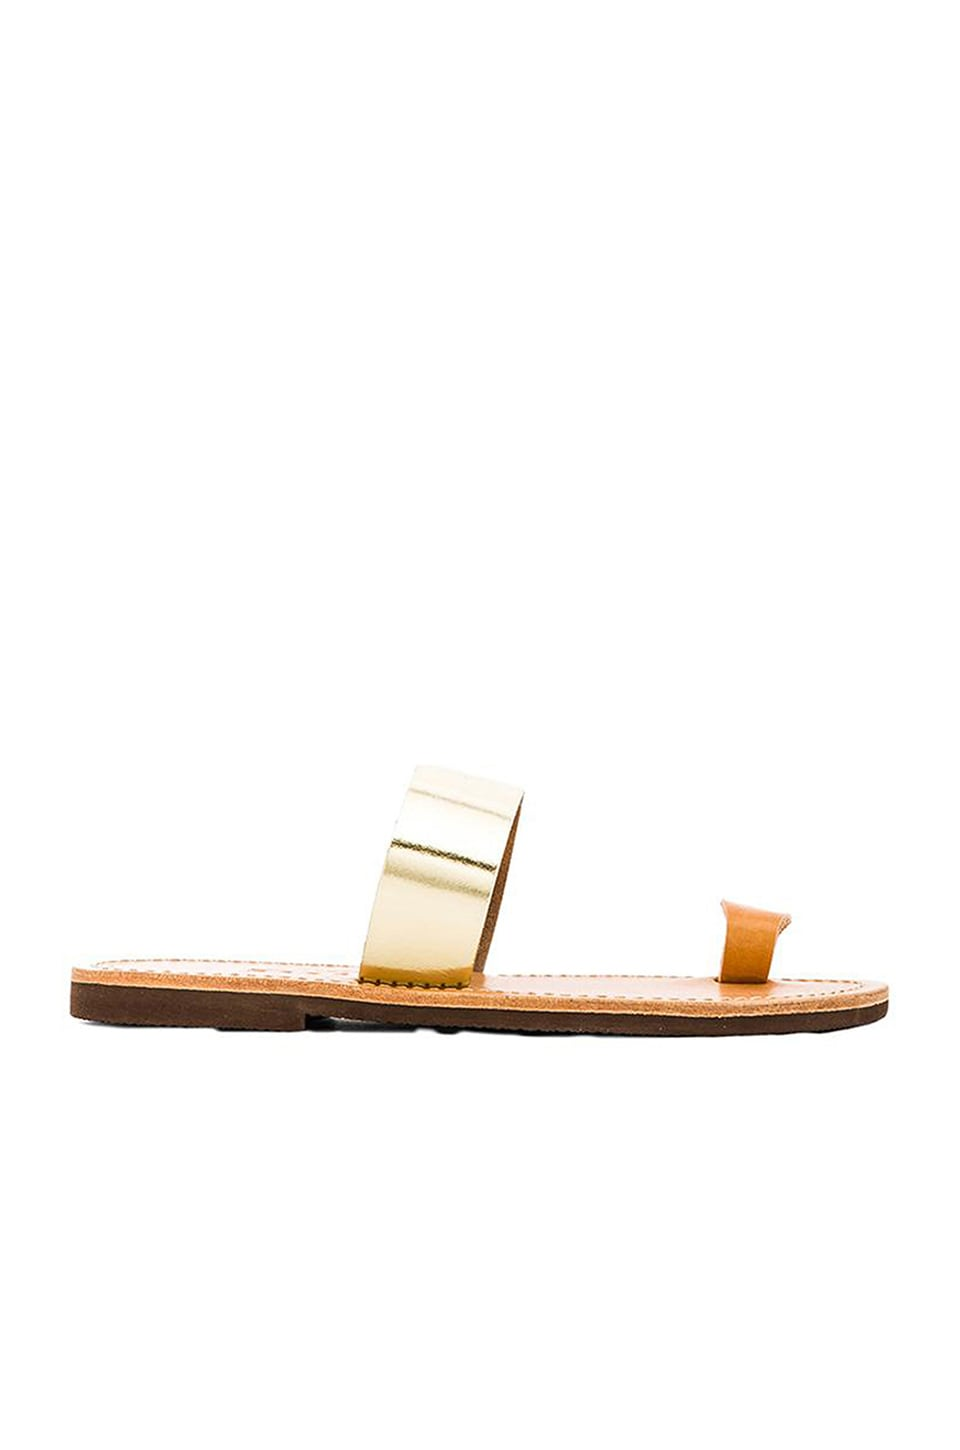 isapera Elia Sandal in Gold